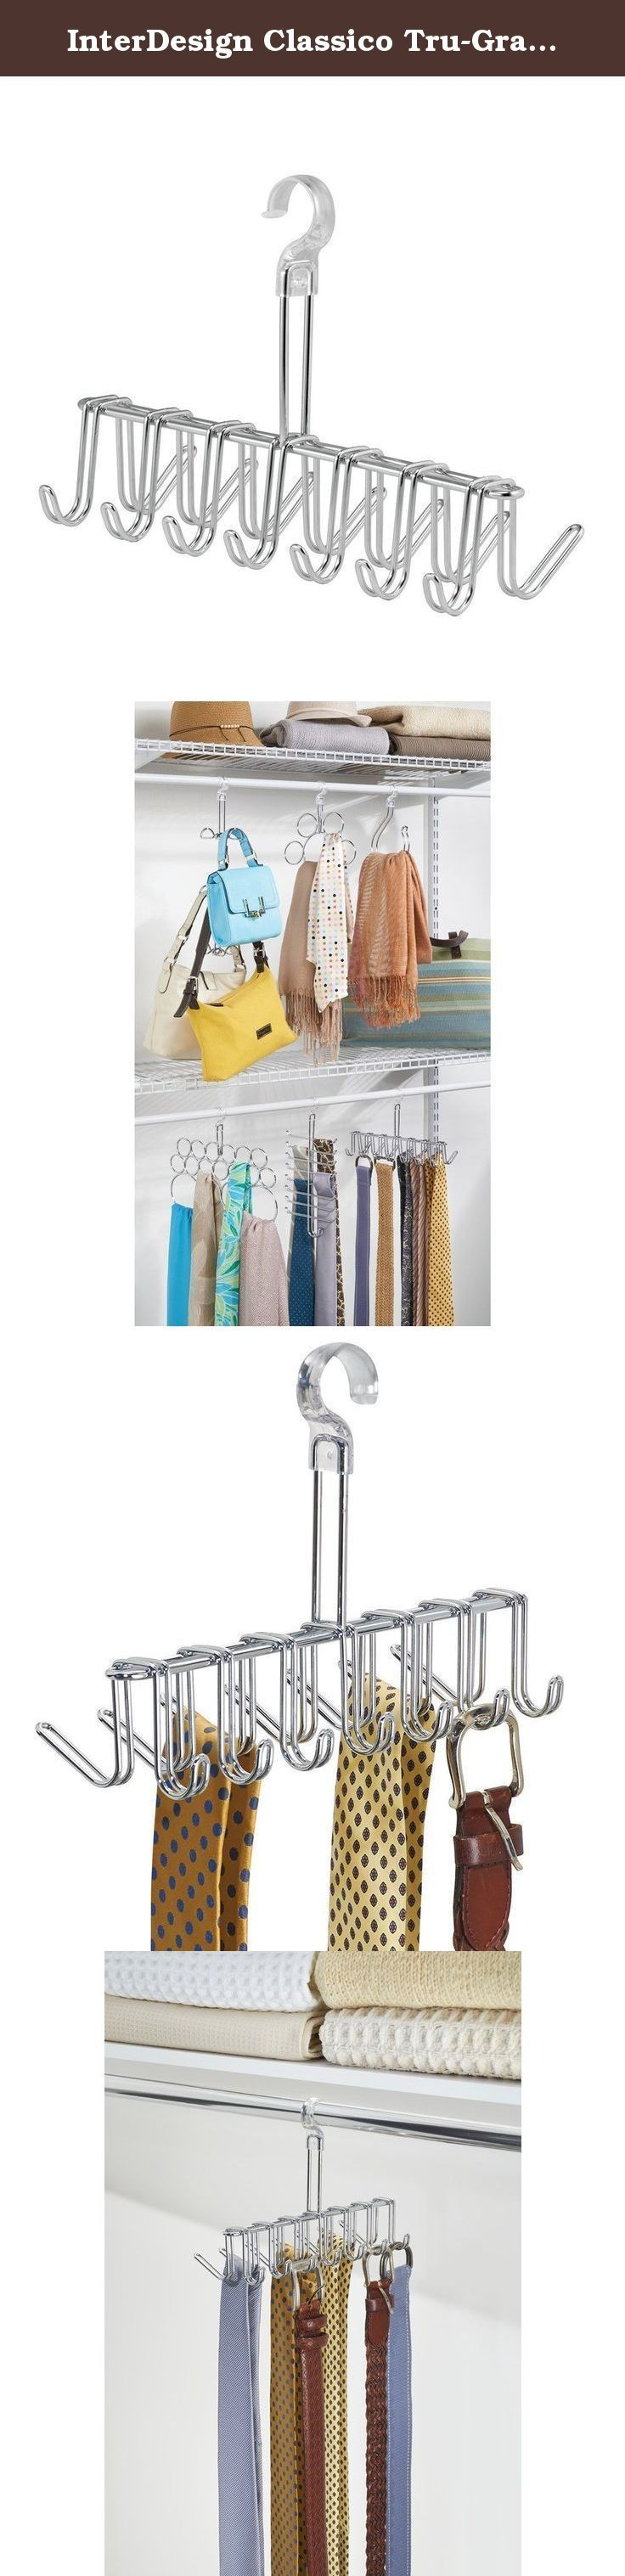 """InterDesign Classico Tru-Grasp Closet Organizer Rack for Ties, Belts - Chrome/Clear. InterDesign's Tru-Grasp collection won't rock or fall off the rod when you grab your accessories. This Tie/Belt Rack """"snaps"""" onto your 1"""" rod for a secure fit. Great for ties, belts and more."""